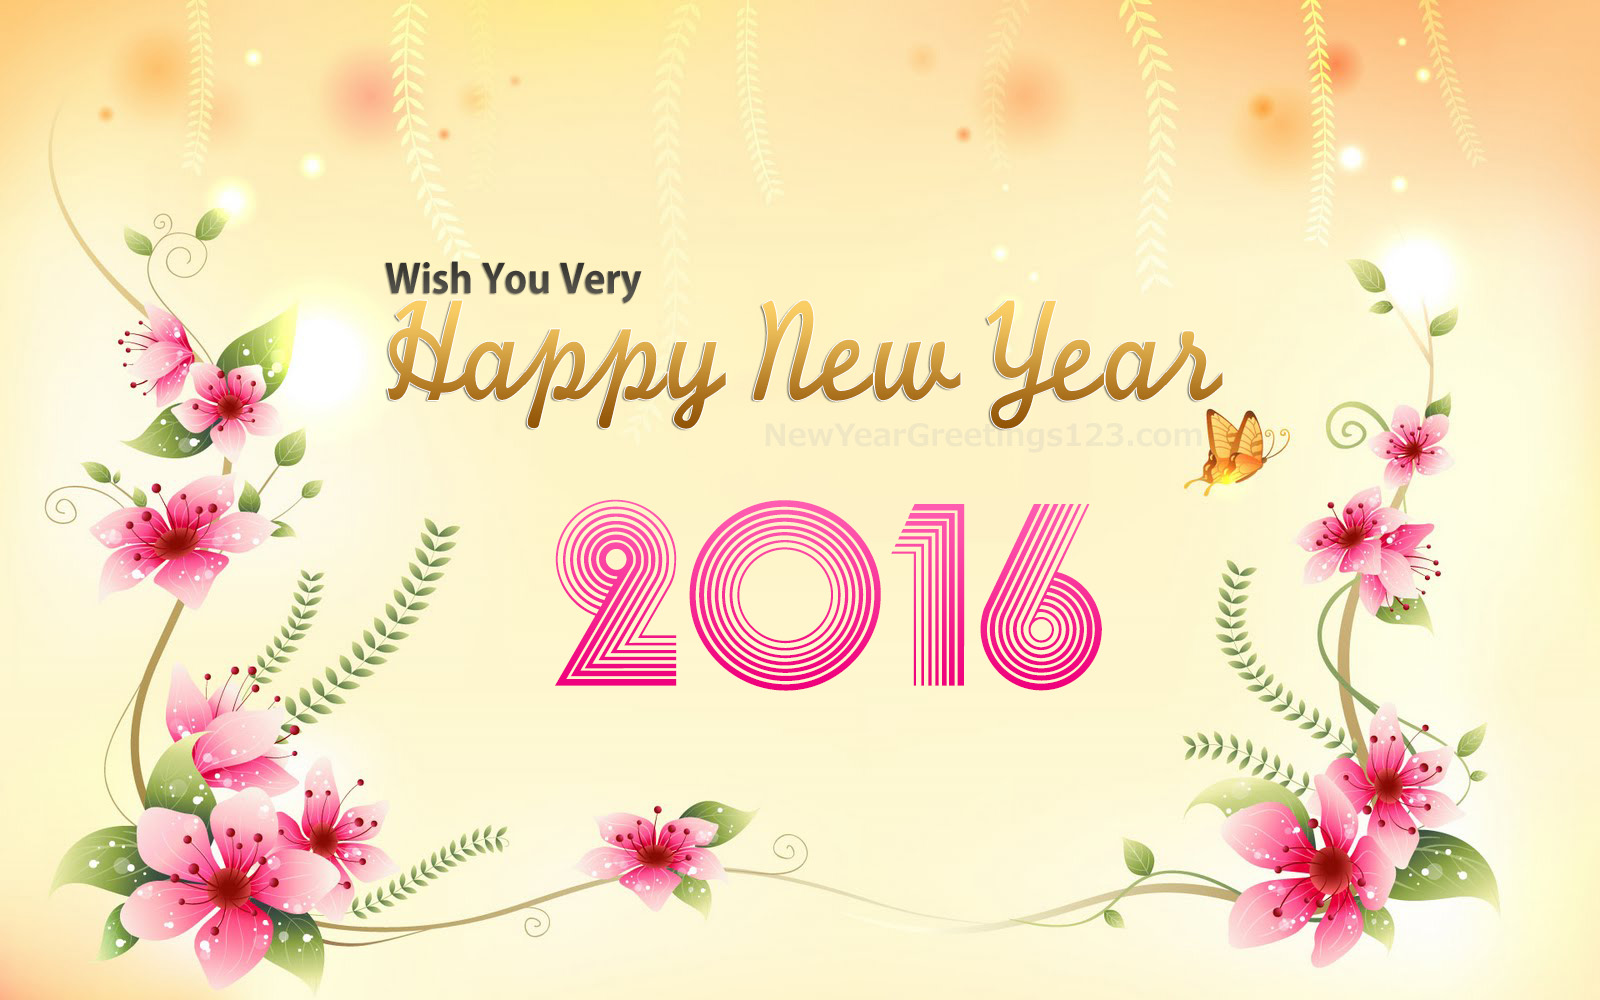 Happy new year 2016 images and wishes pictures best and cute wallpapers for happy new year 2016 kristyandbryce Image collections